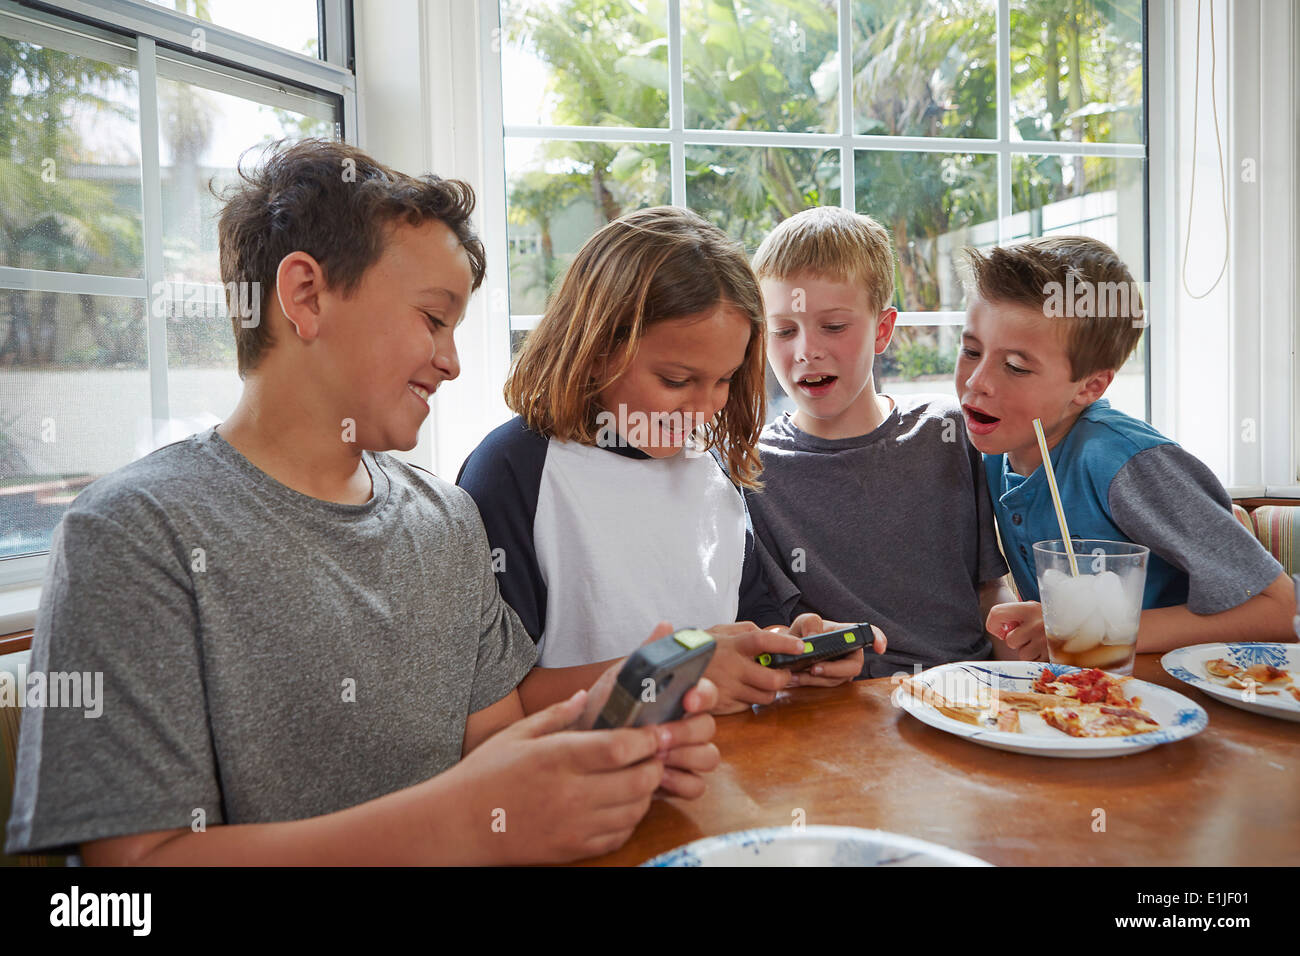 Boys playing handheld video games - Stock Image